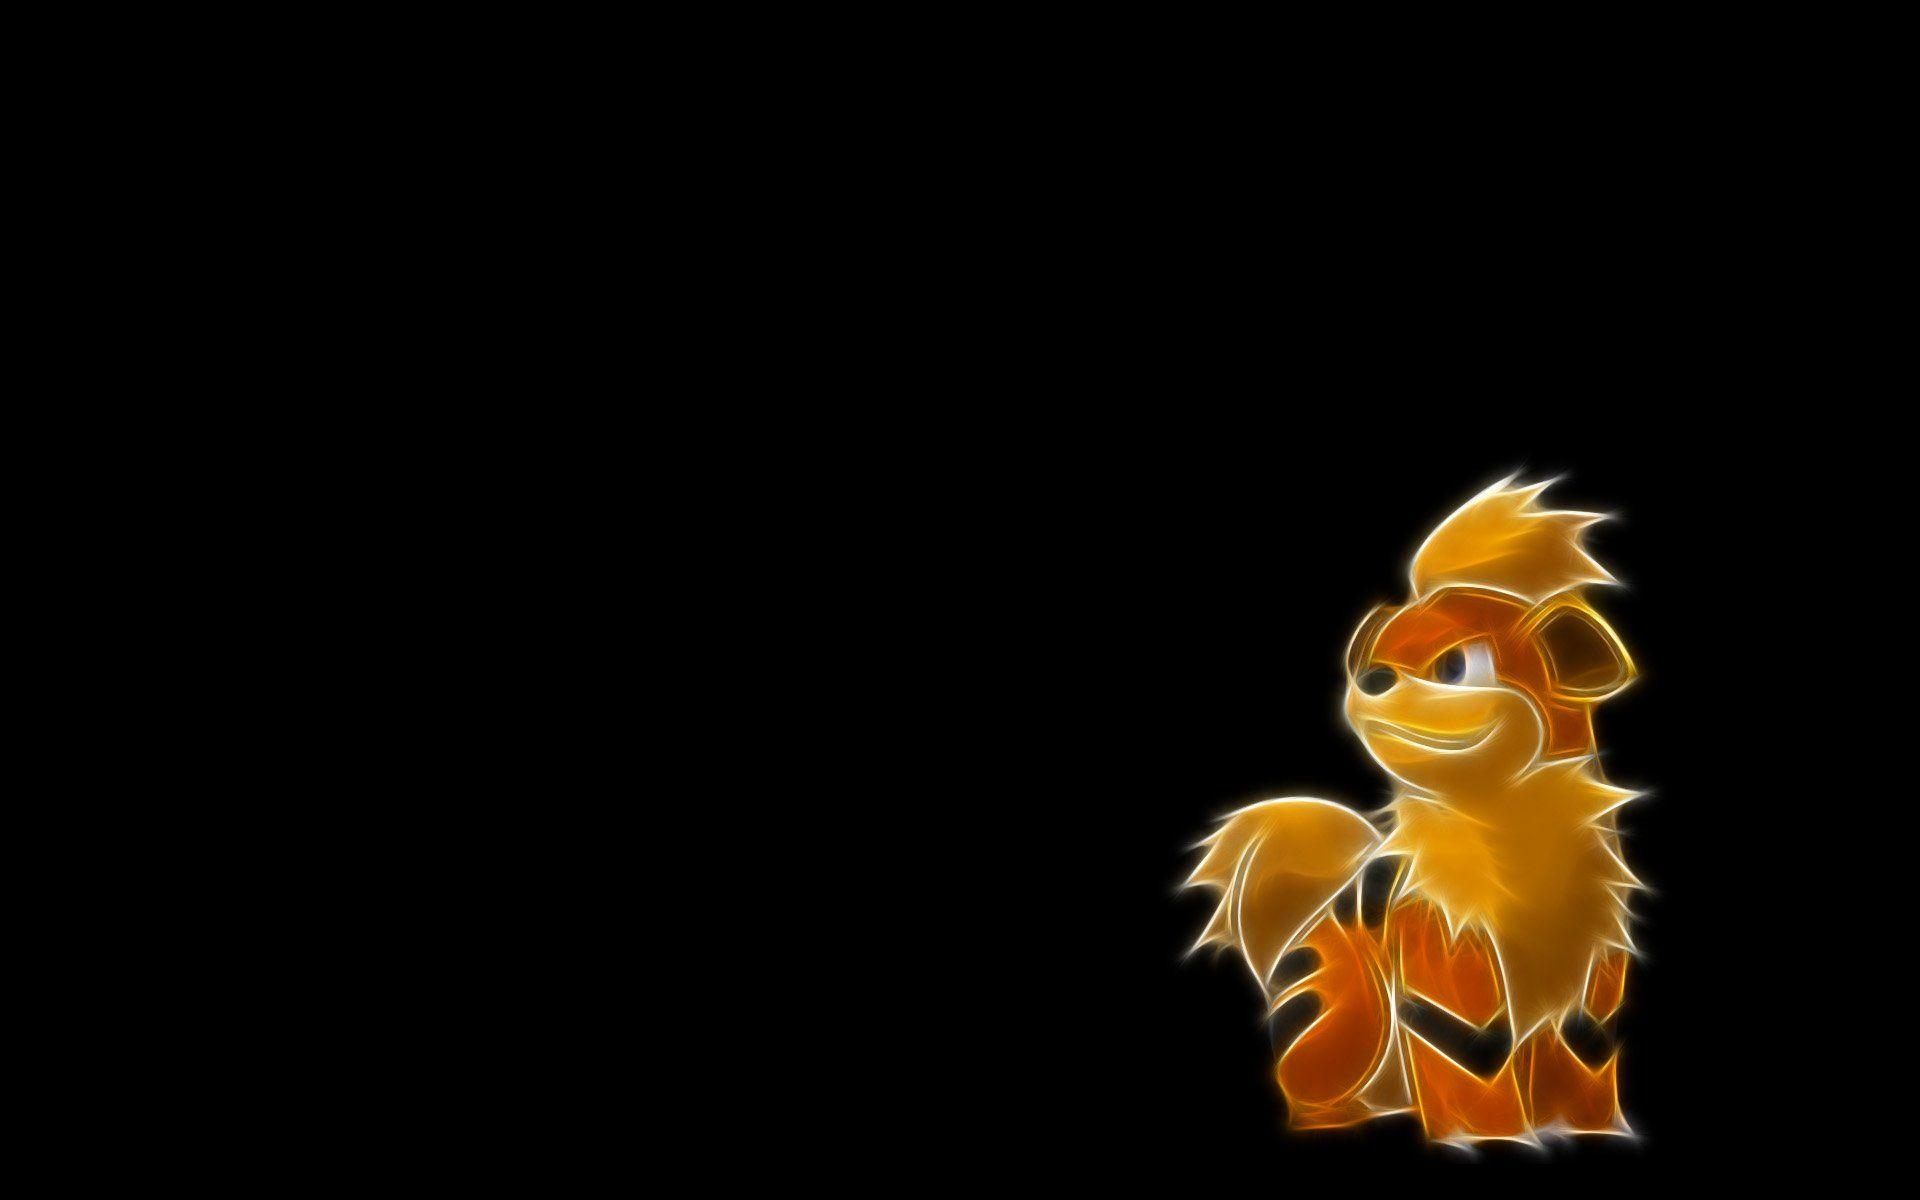 4 Growlithe (Pokémon) HD Wallpapers | Background Images ...